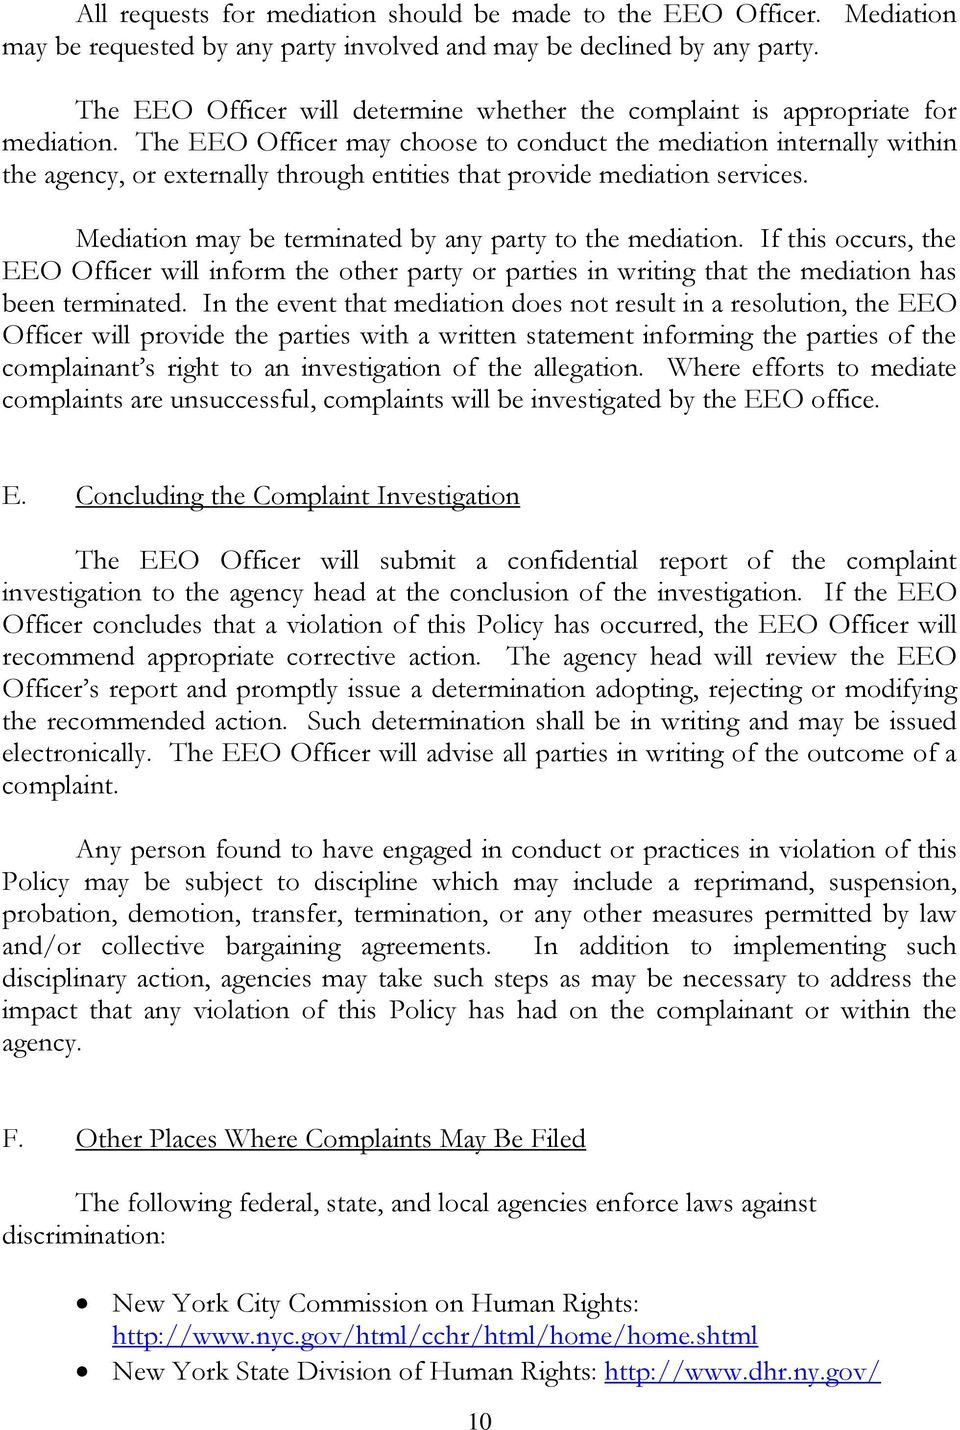 The EEO Officer may choose to conduct the mediation internally within the agency, or externally through entities that provide mediation services.